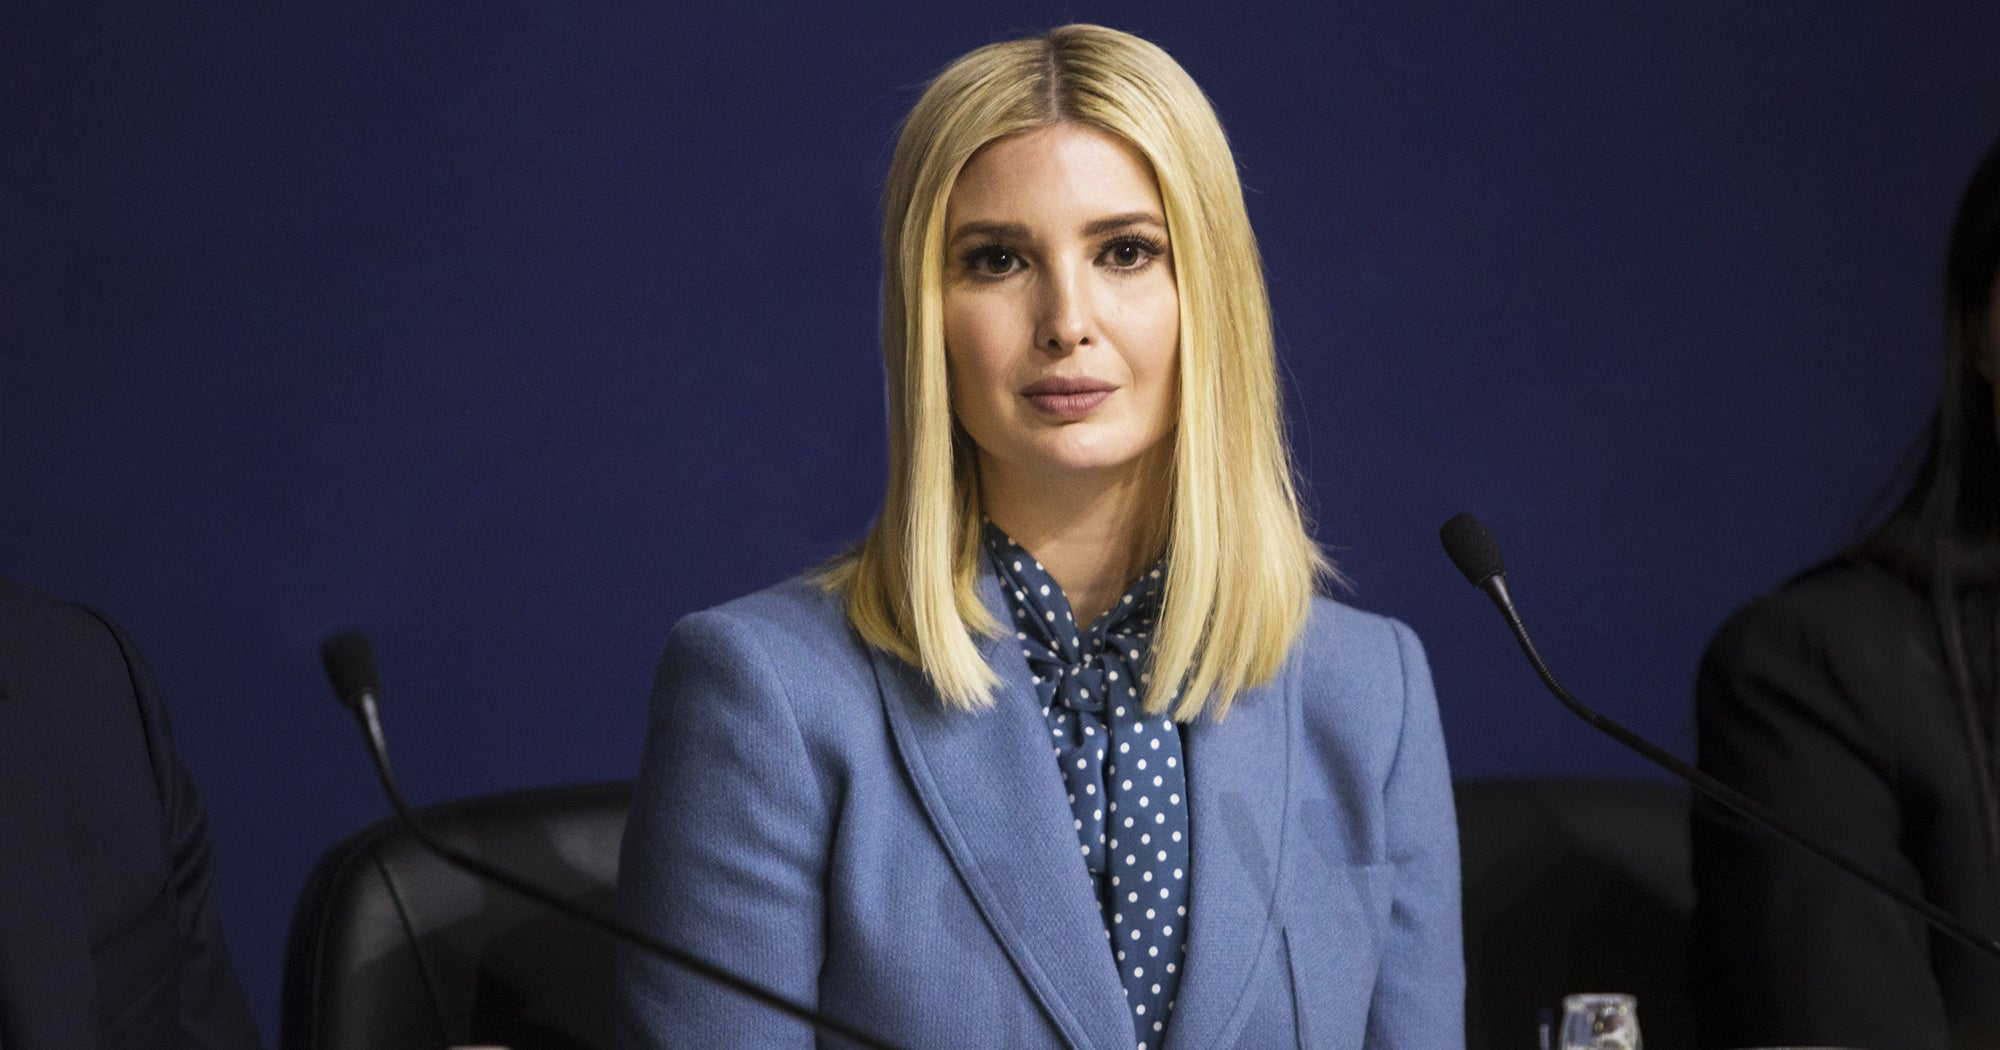 Ivanka Trump's New Hair Color Is A Shocking 2000s Throwback